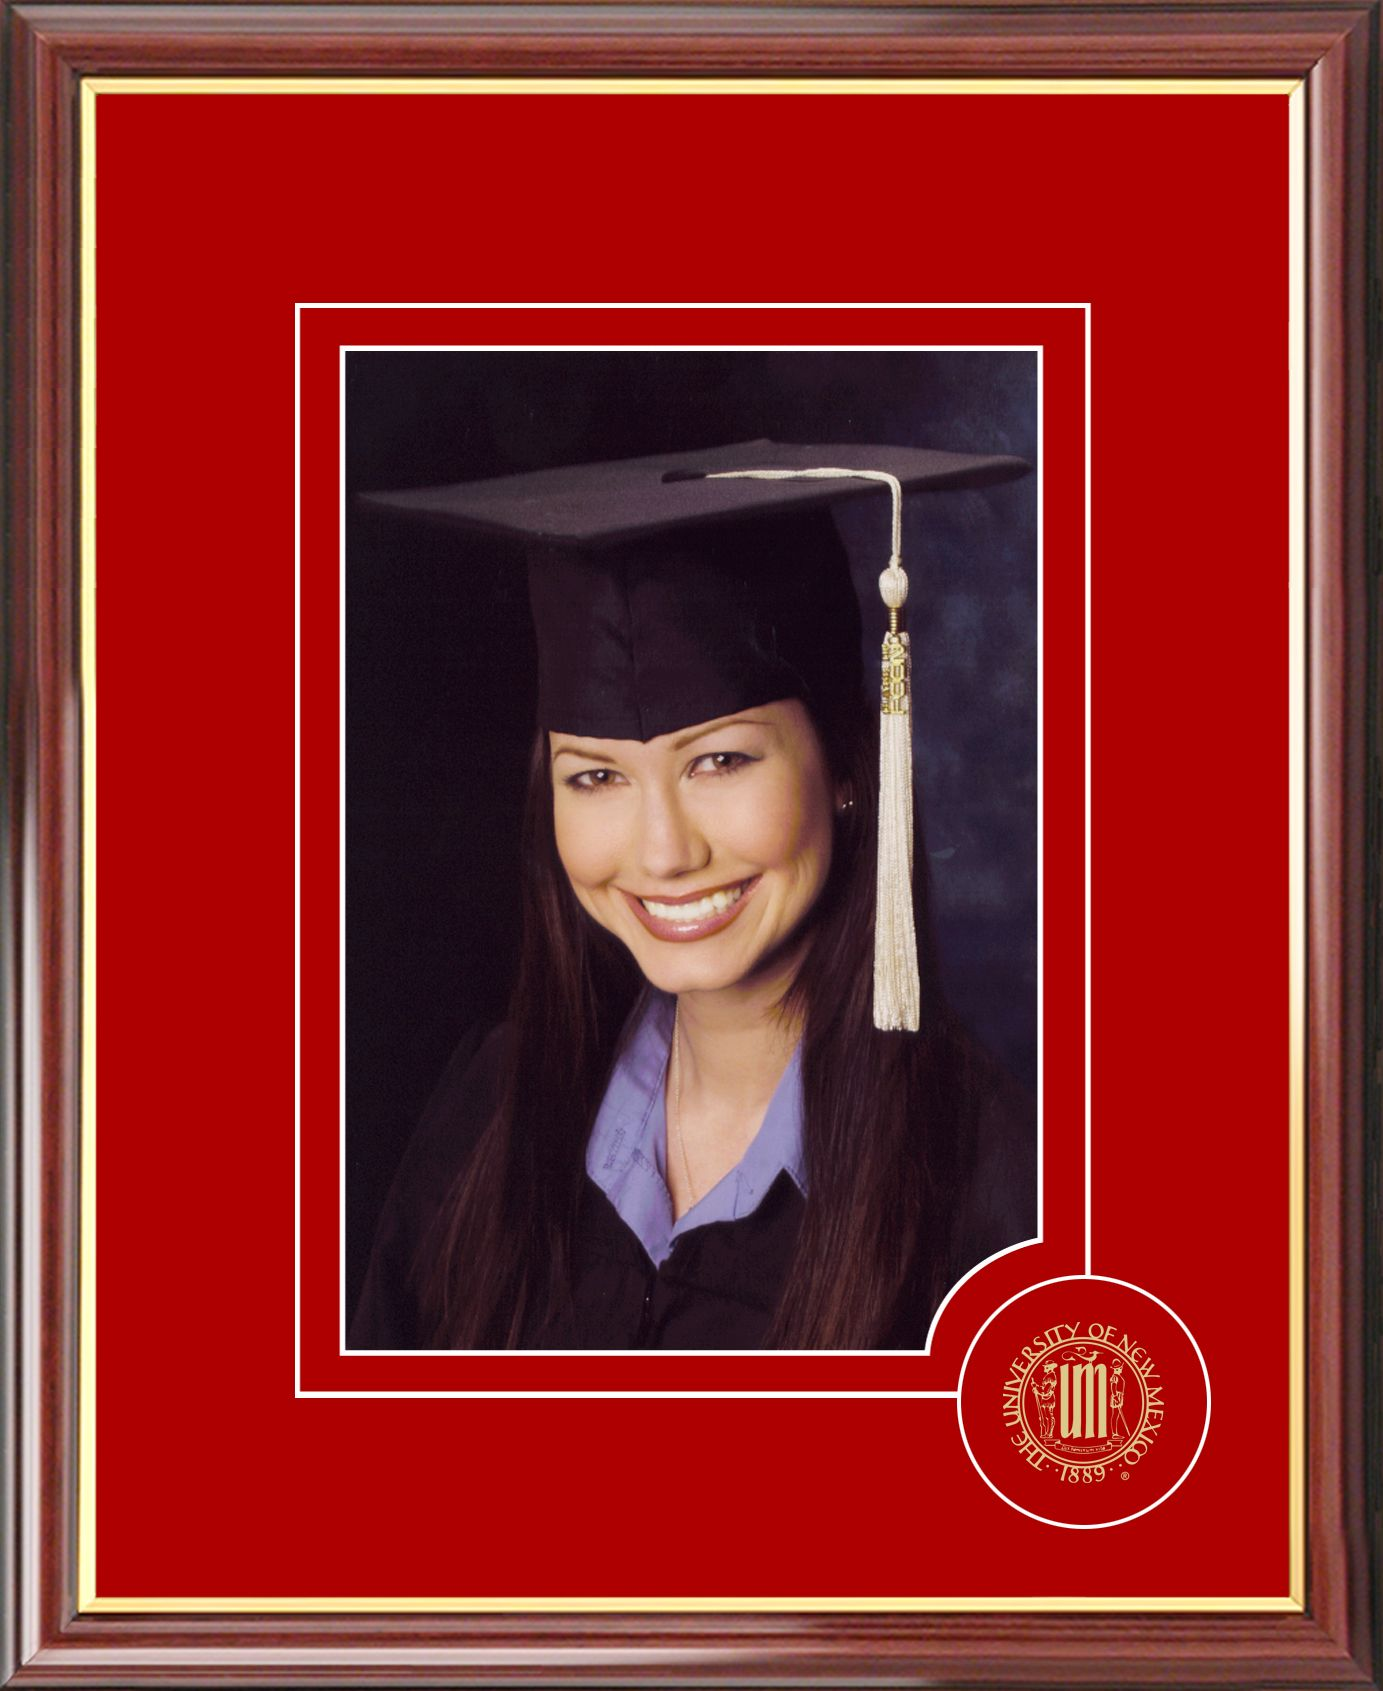 University of New Mexico 5X7 Graduate Portrait Frame